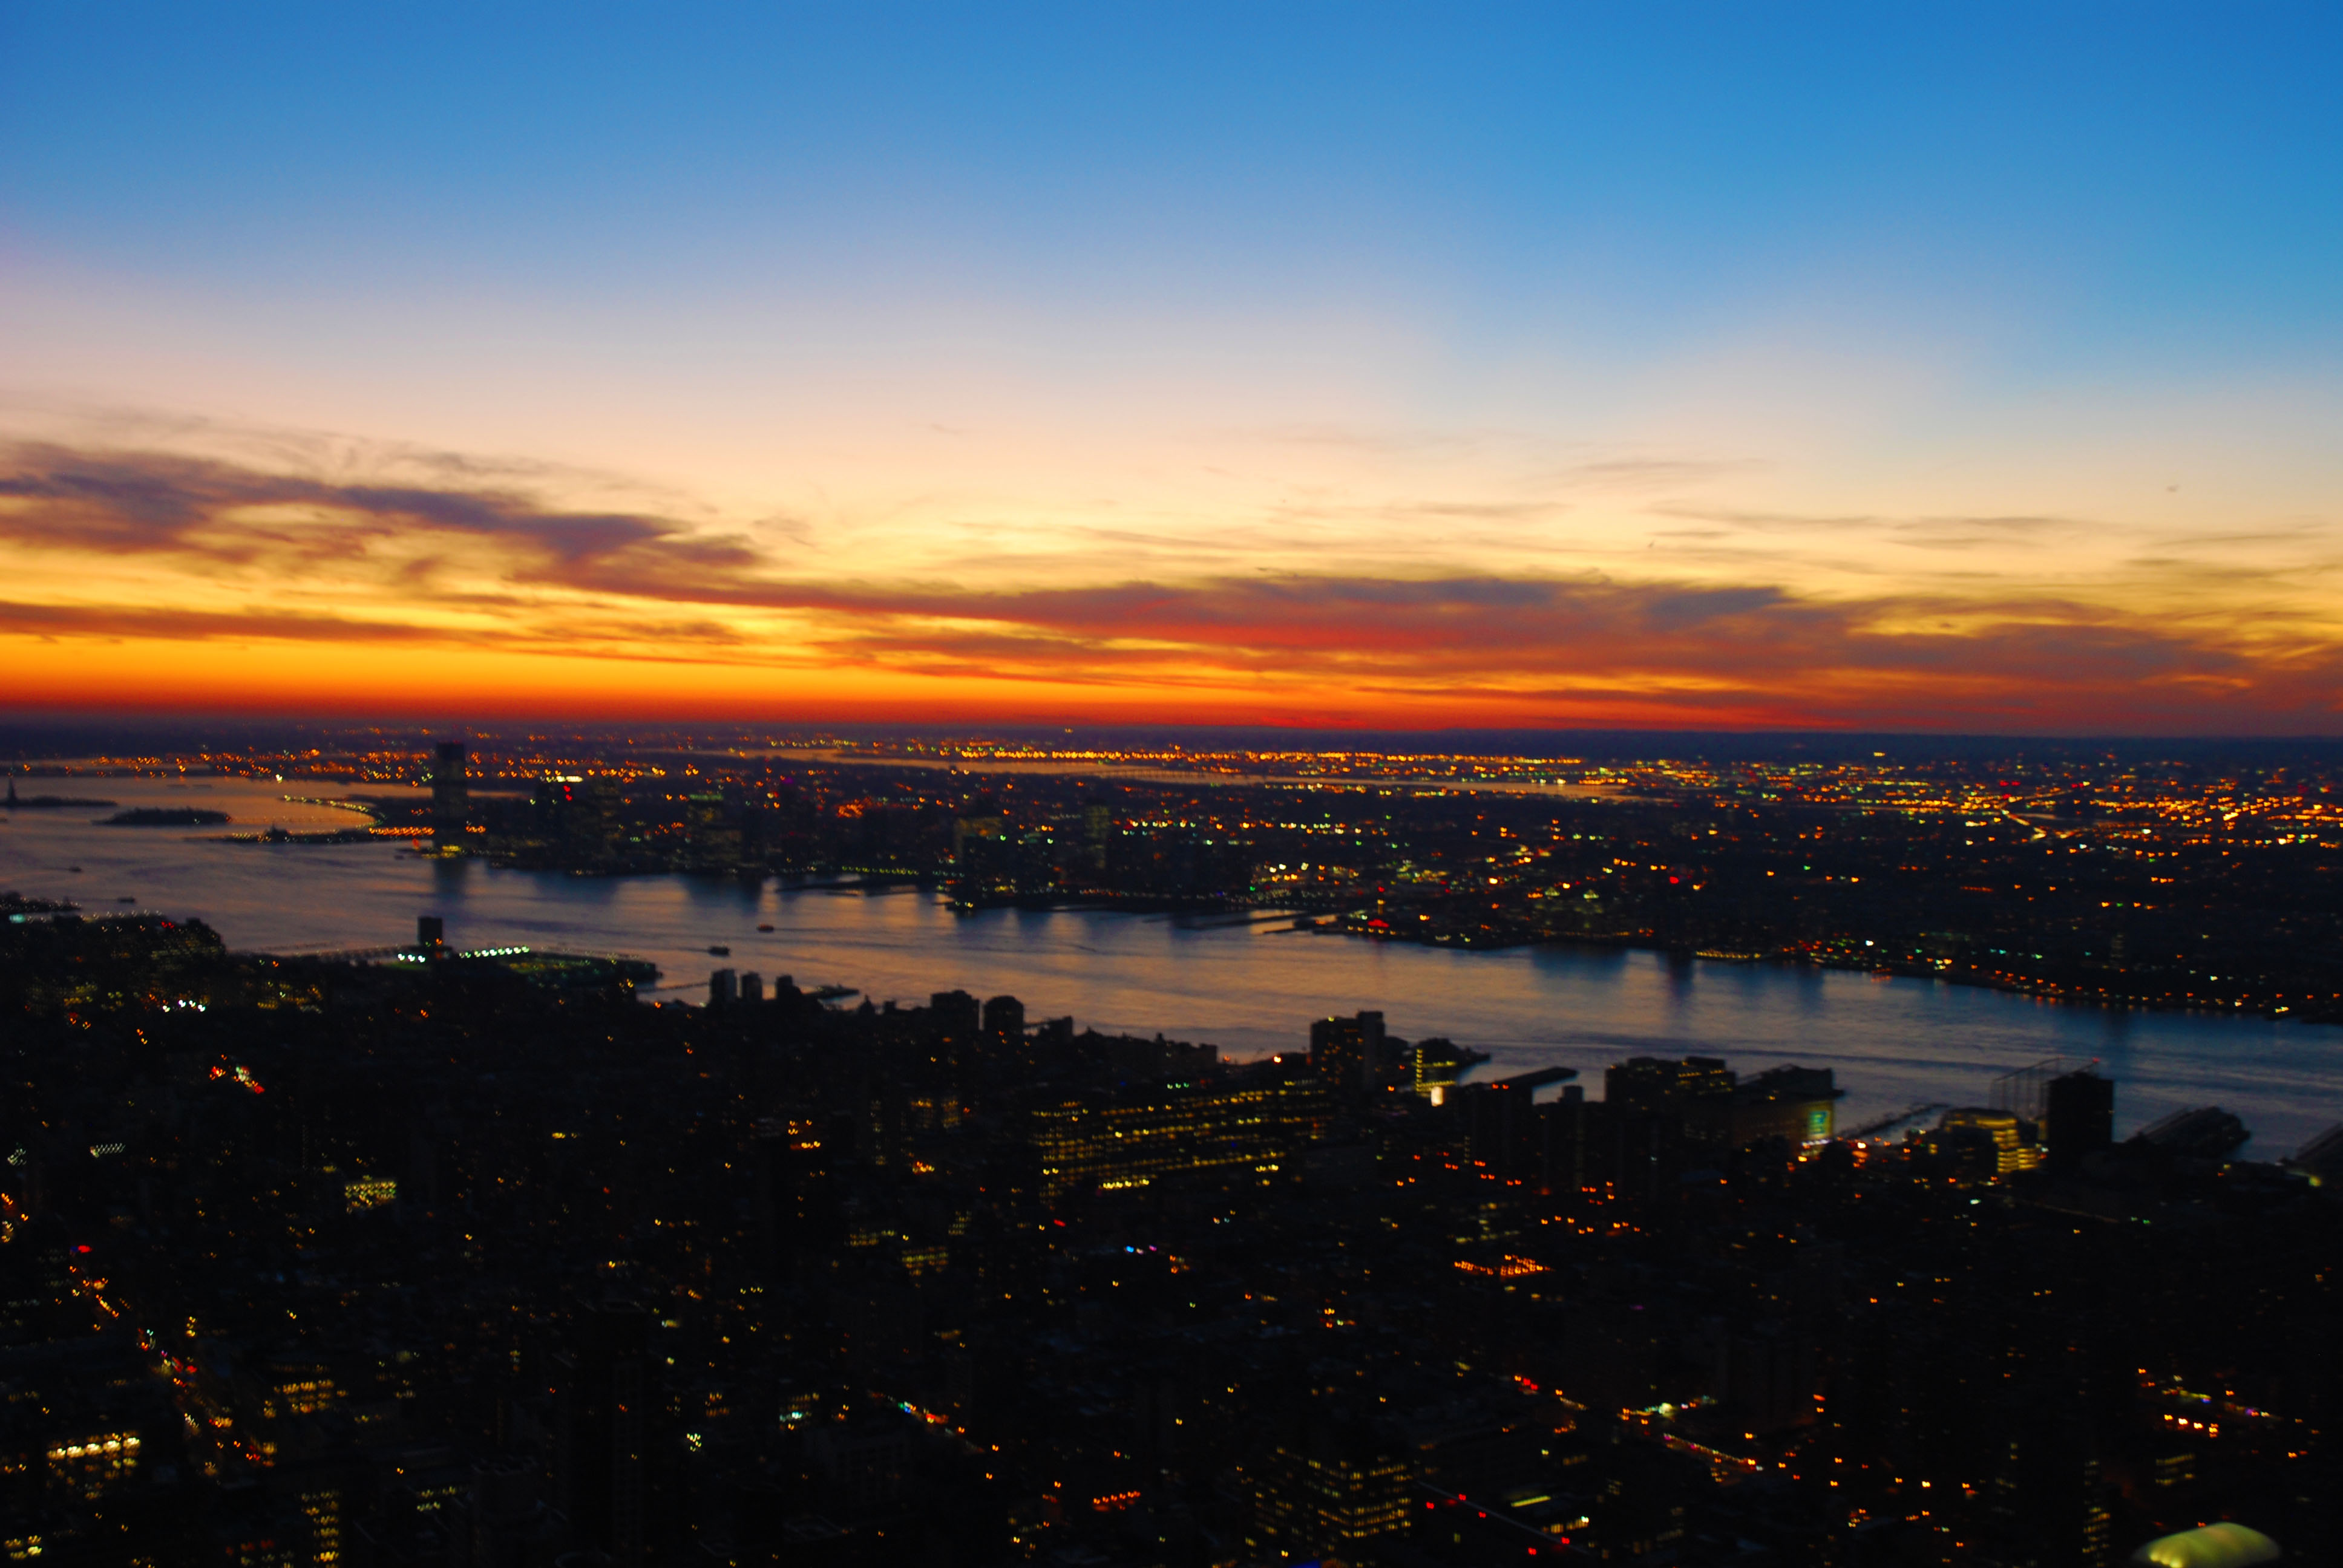 empire state building sunset - photo #44